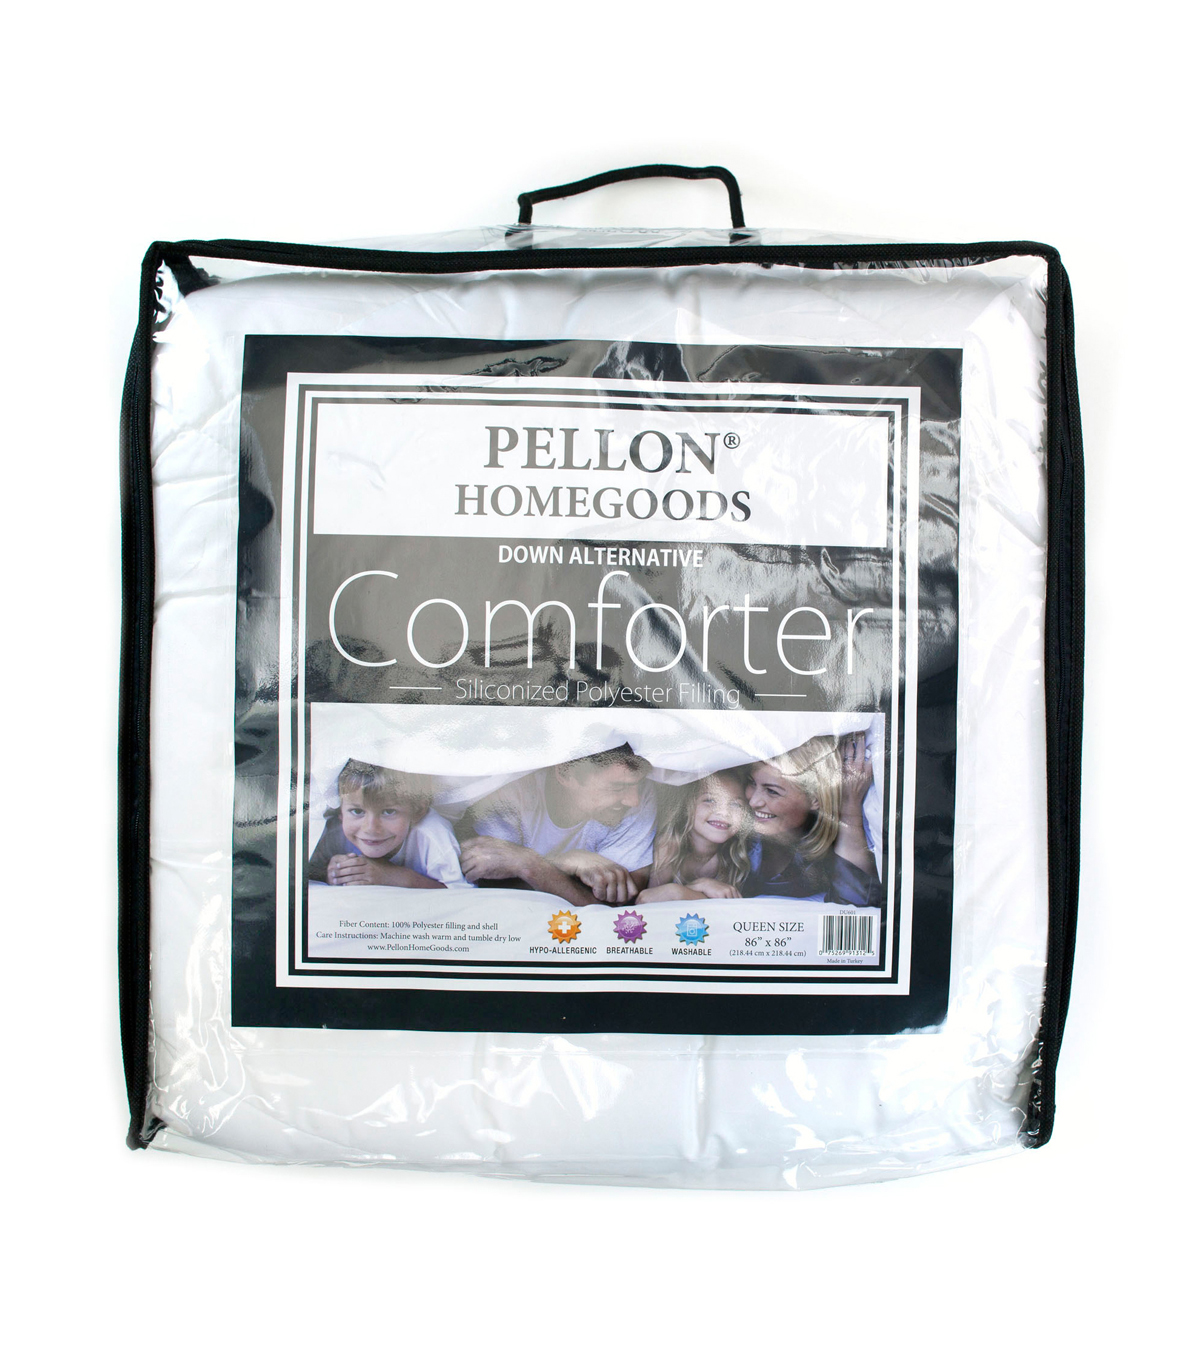 Pellon Queen Comforter, White 86\u0022 x 86\u0022